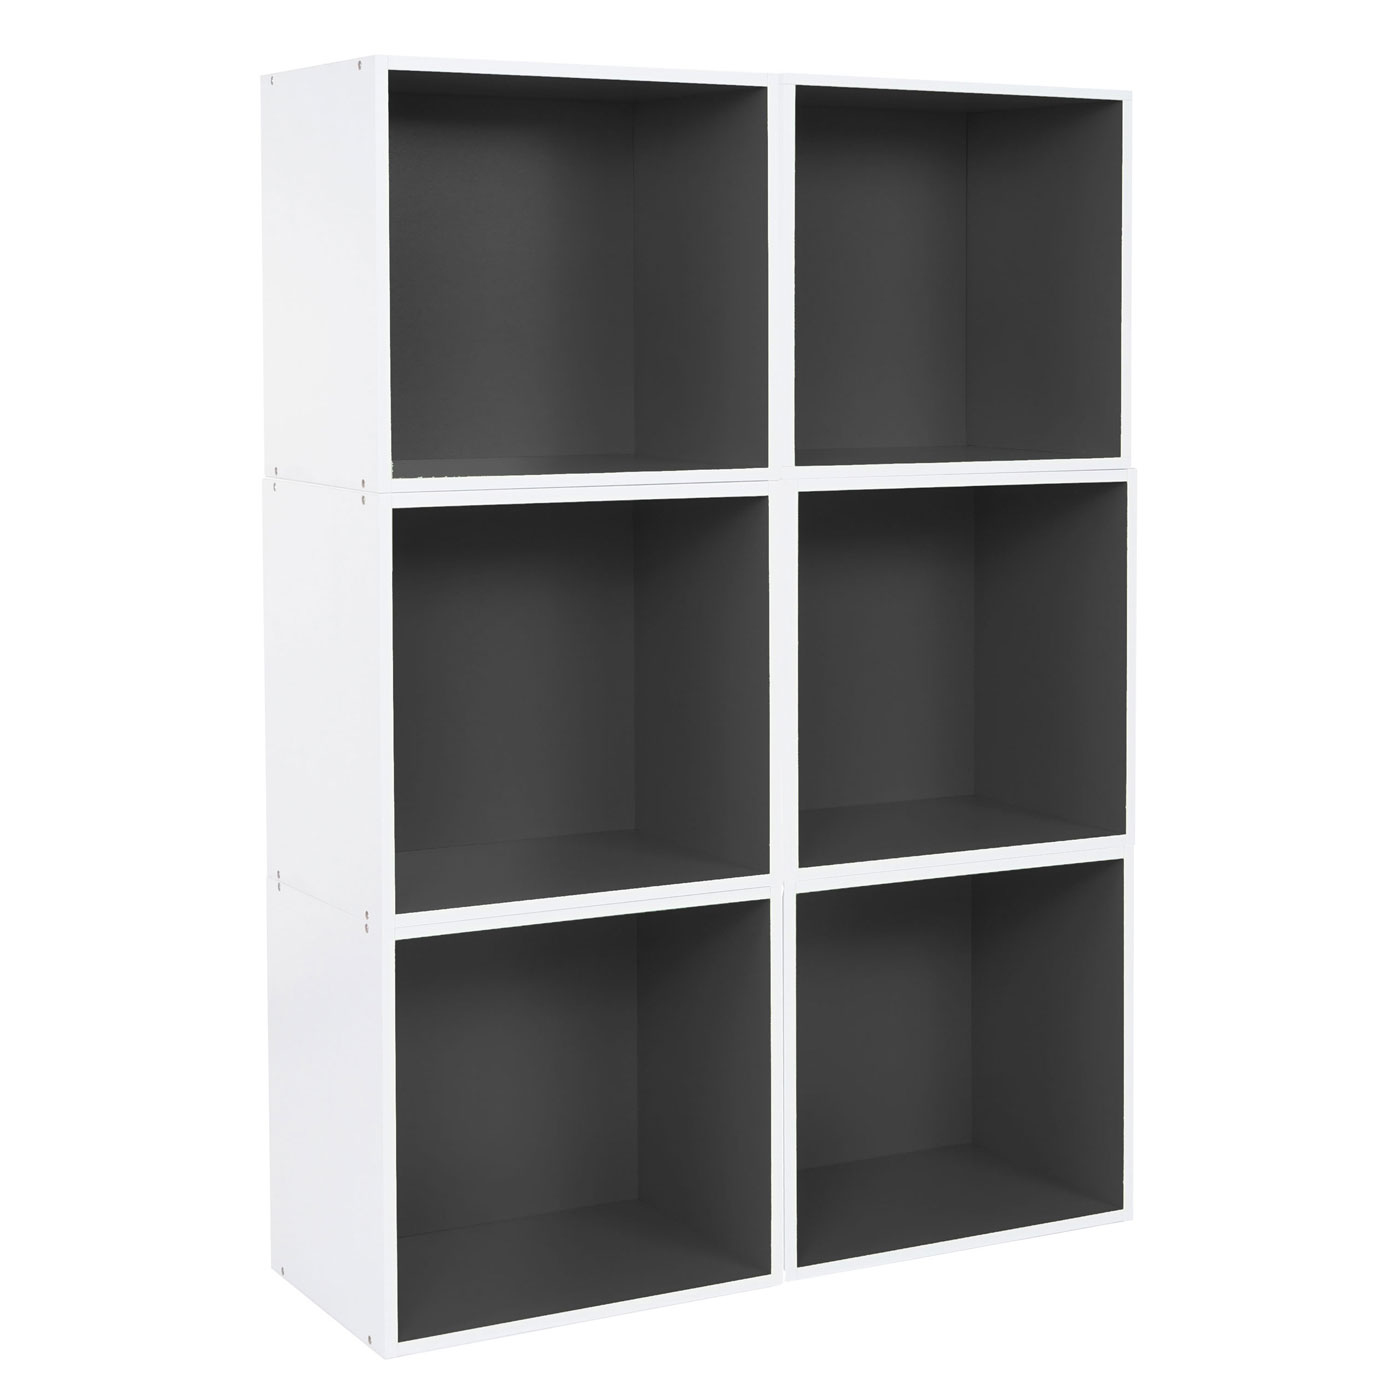 6x tag re cube falun tag re ind pendante biblioth que 39x39x29cm noir ebay. Black Bedroom Furniture Sets. Home Design Ideas